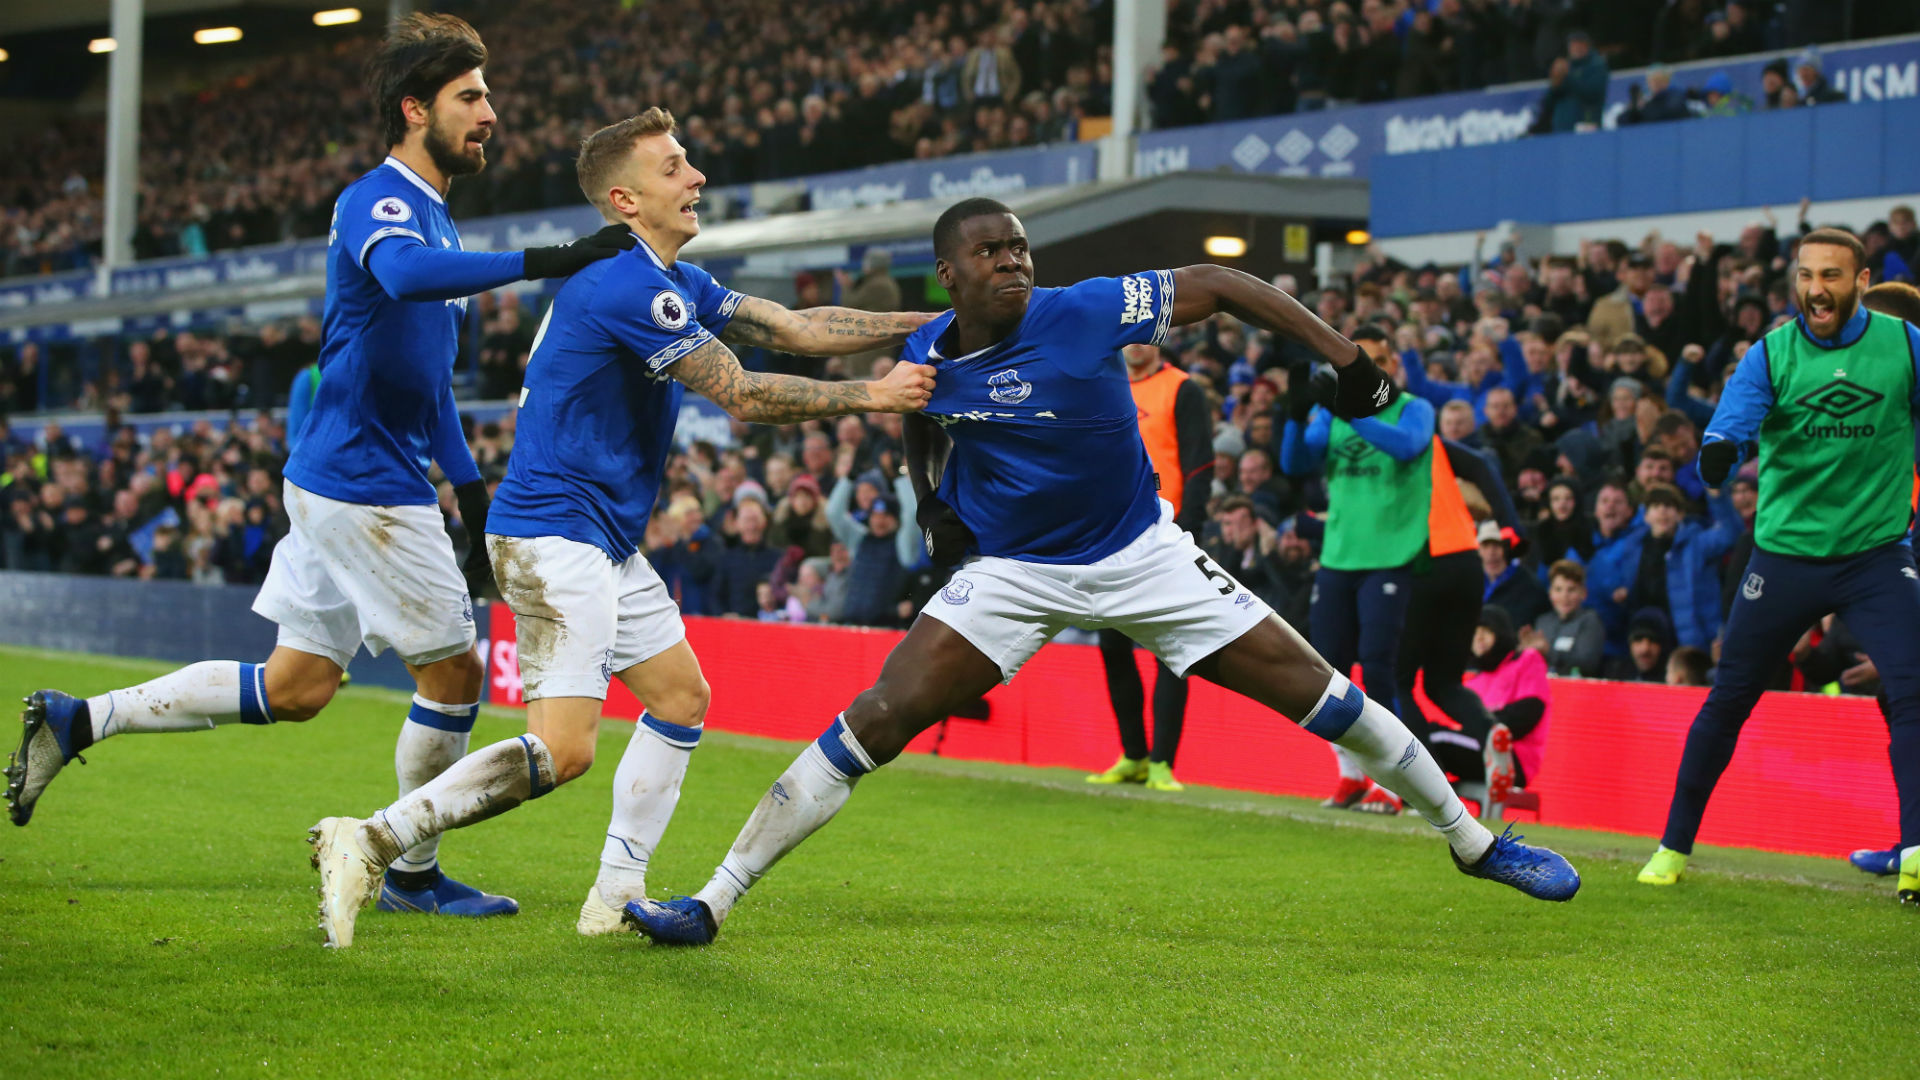 Everton 2 Bournemouth 0: Zouma and Calvert-Lewin send Toffees into top half